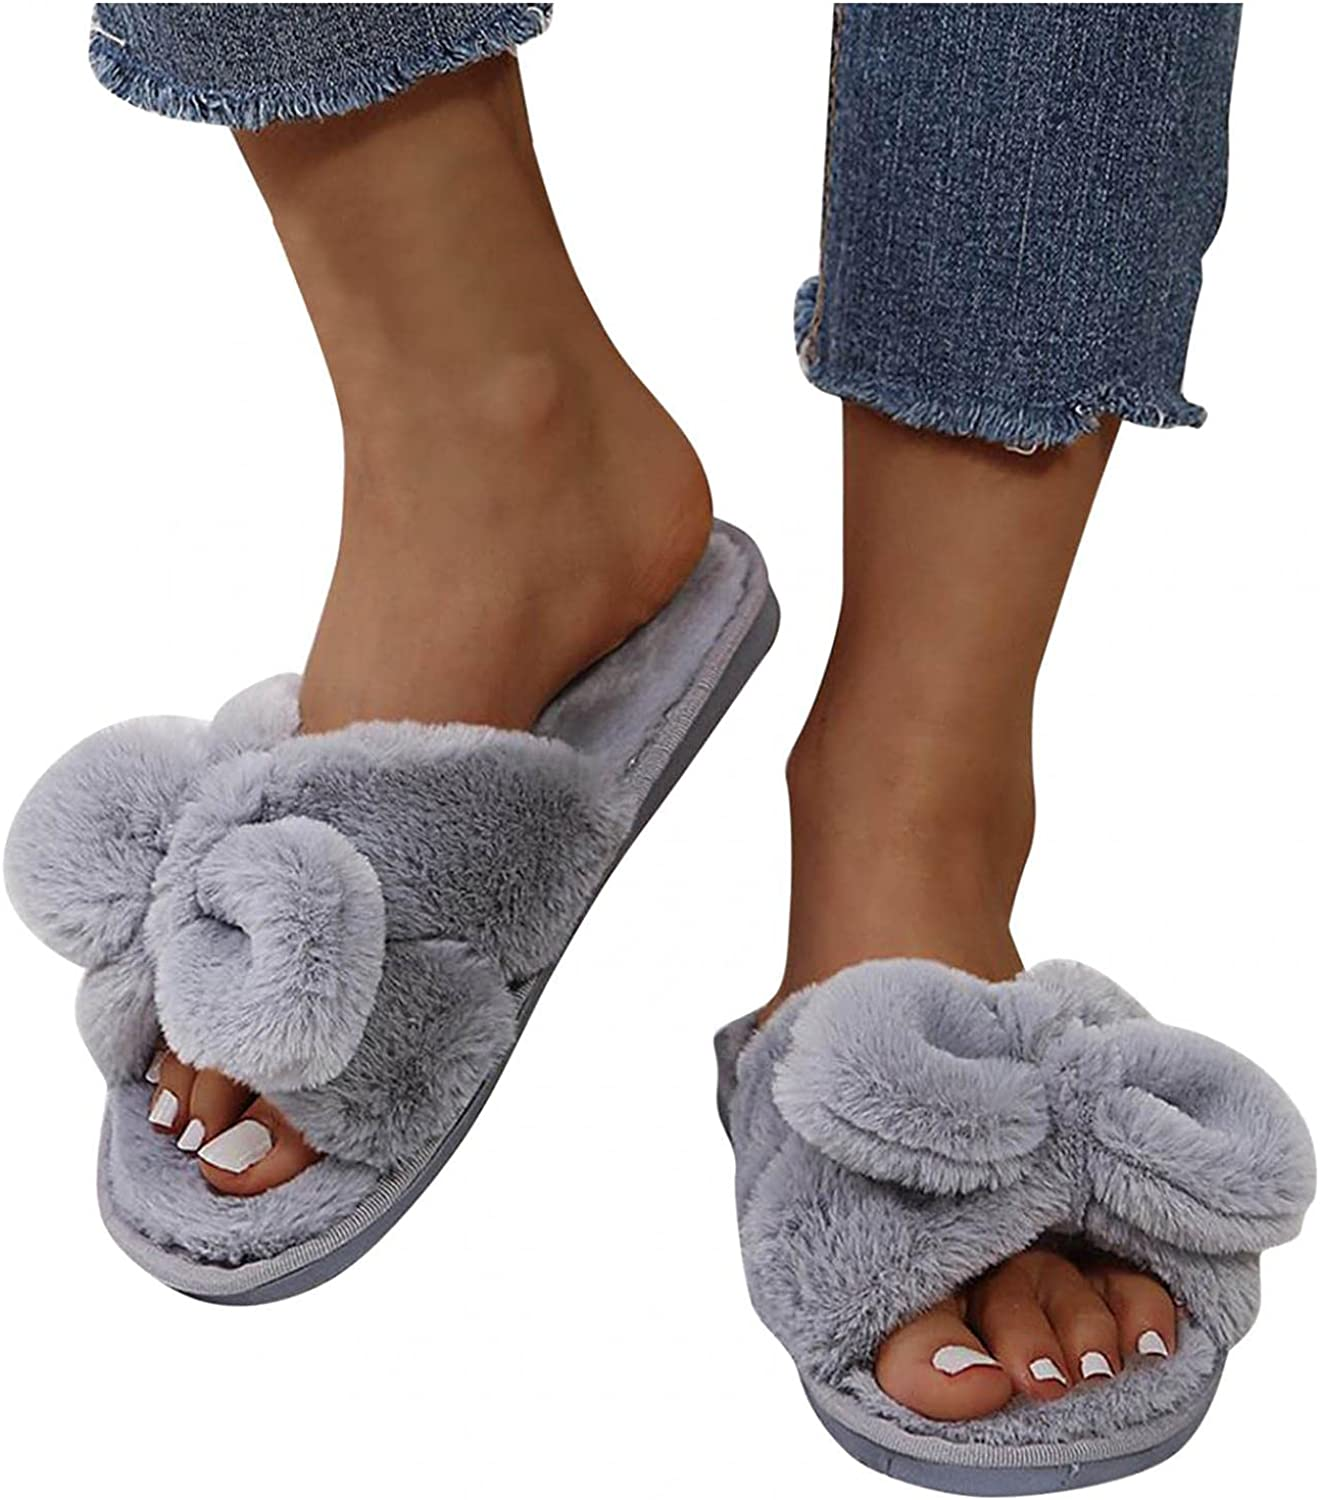 Gibobby Slippers for Women,Women's Fashion Dressy Bowknot Memory Foam Soft Slip On House Slippers Cozy Fuzzy Comfort House Shoes